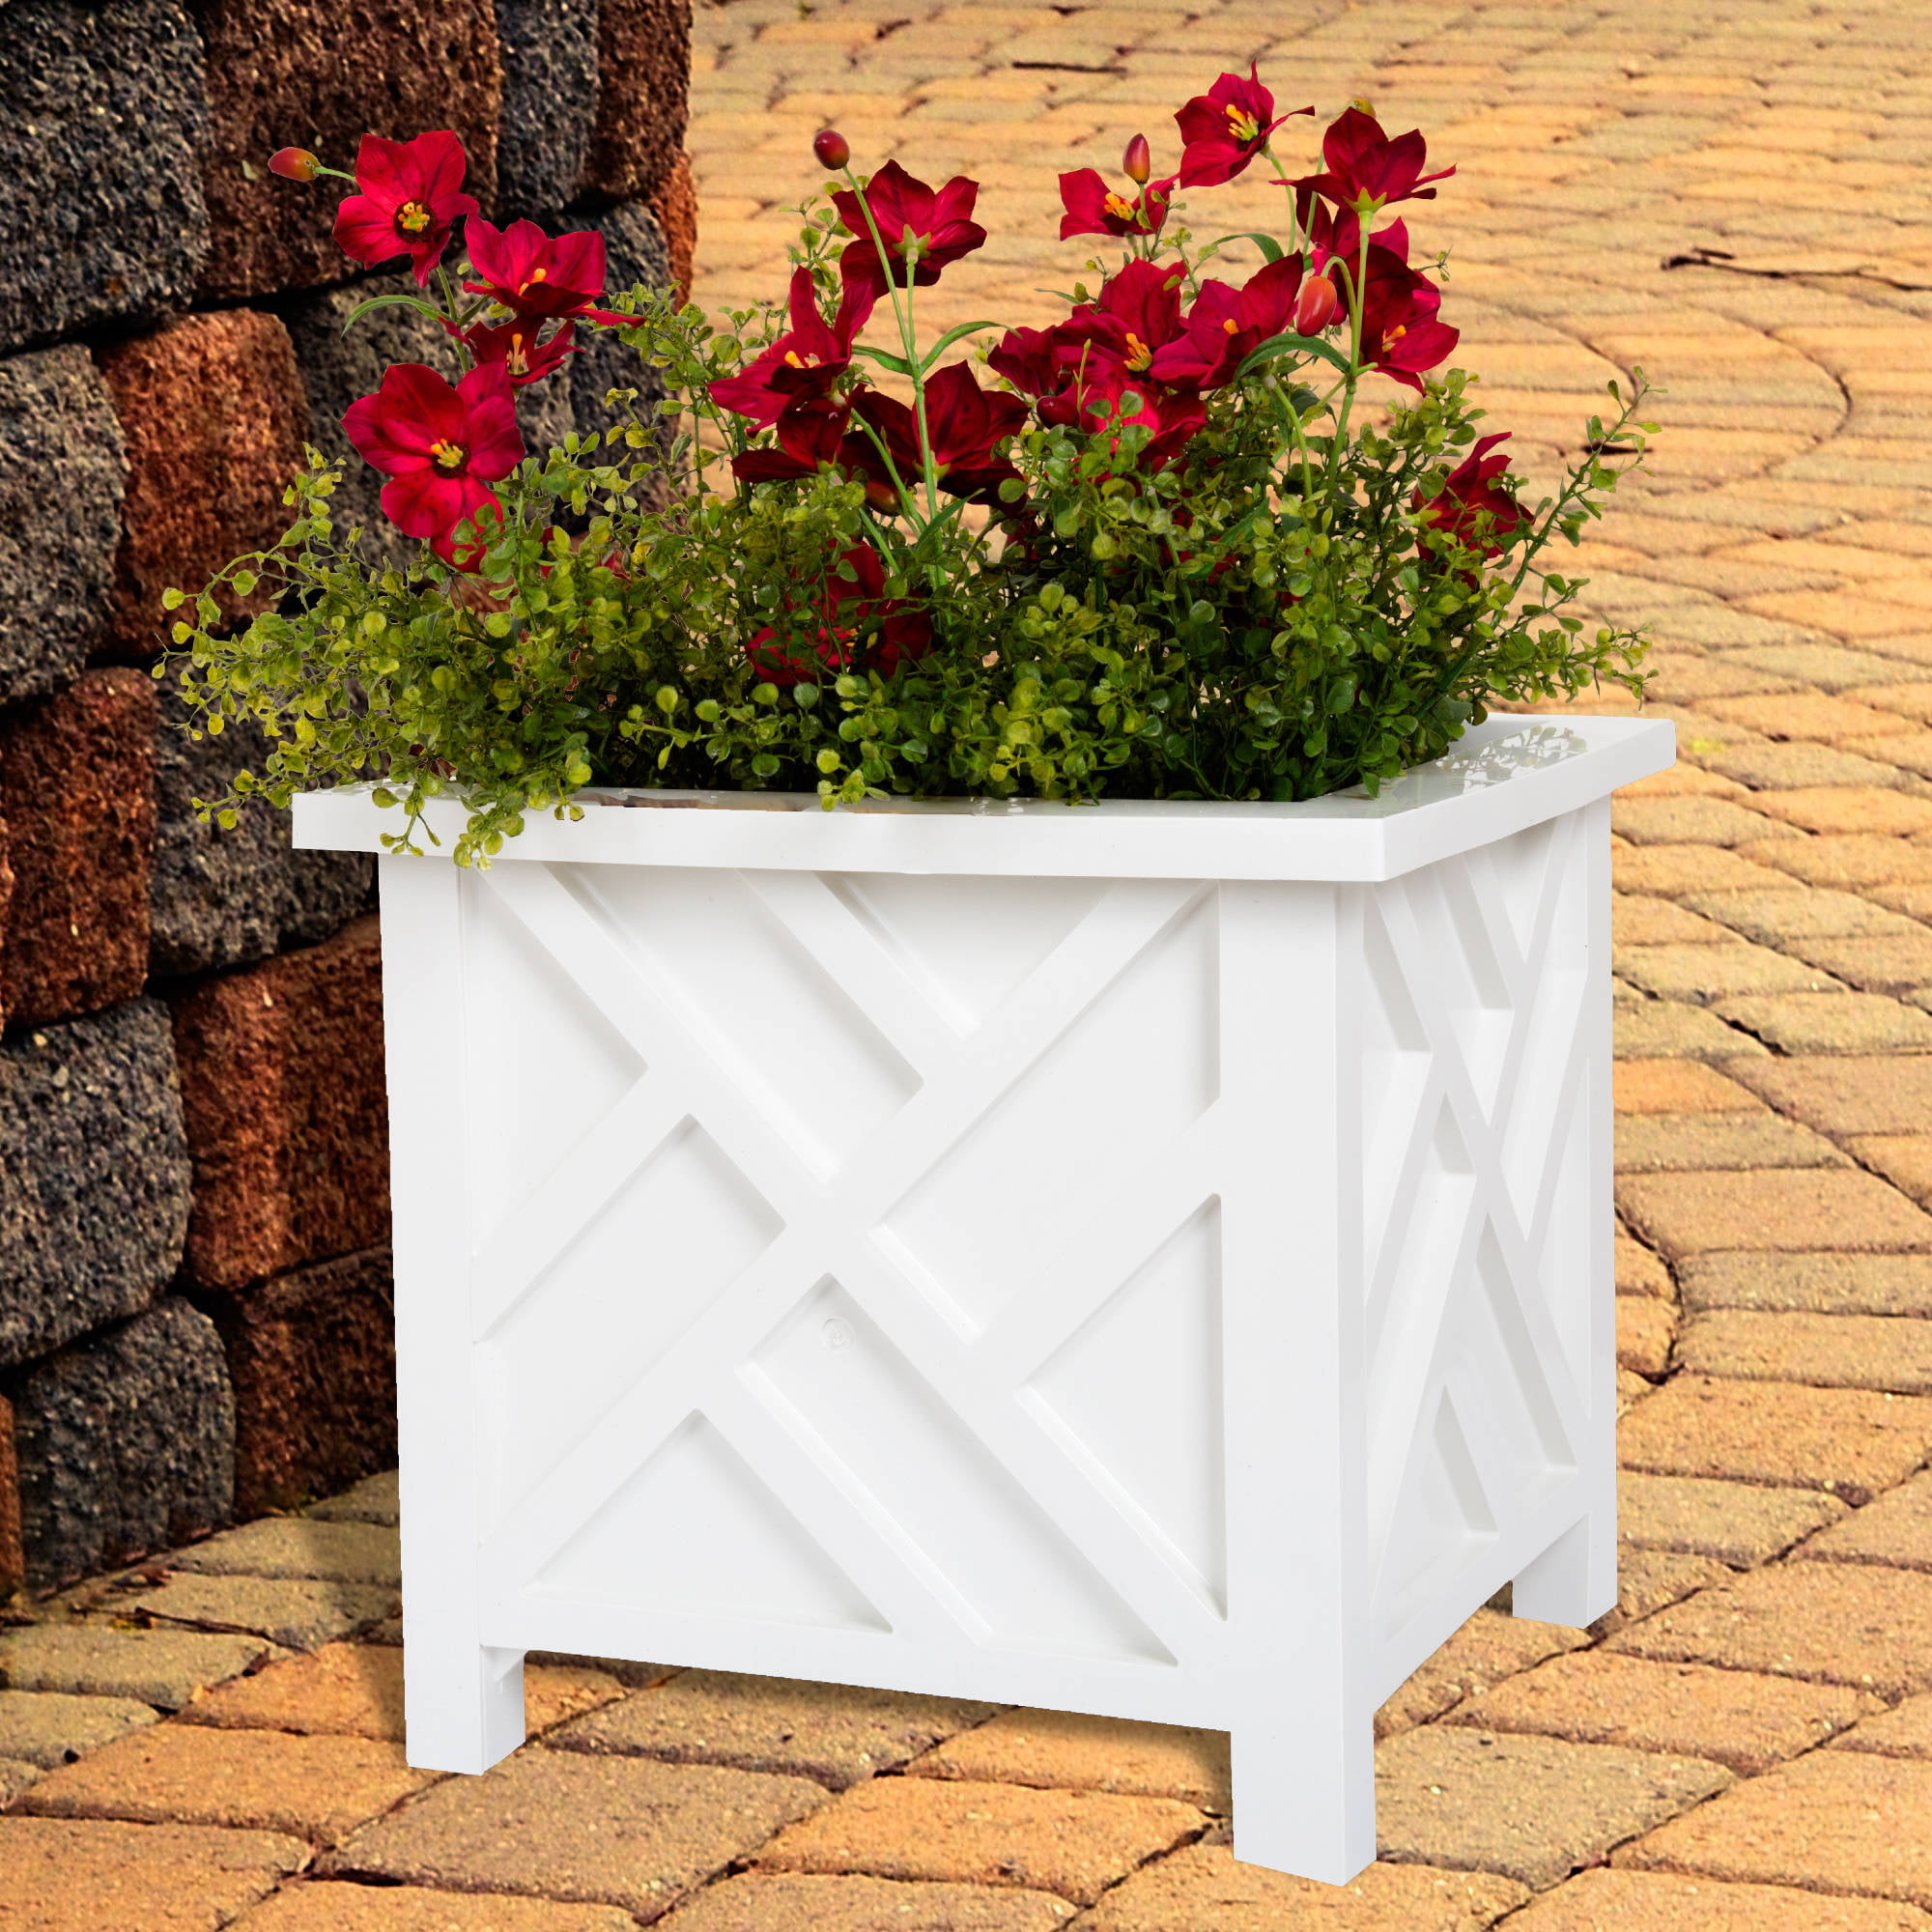 Plant Pot Holder, Planter Container Box by Pure Garden, White by Trademark Global LLC